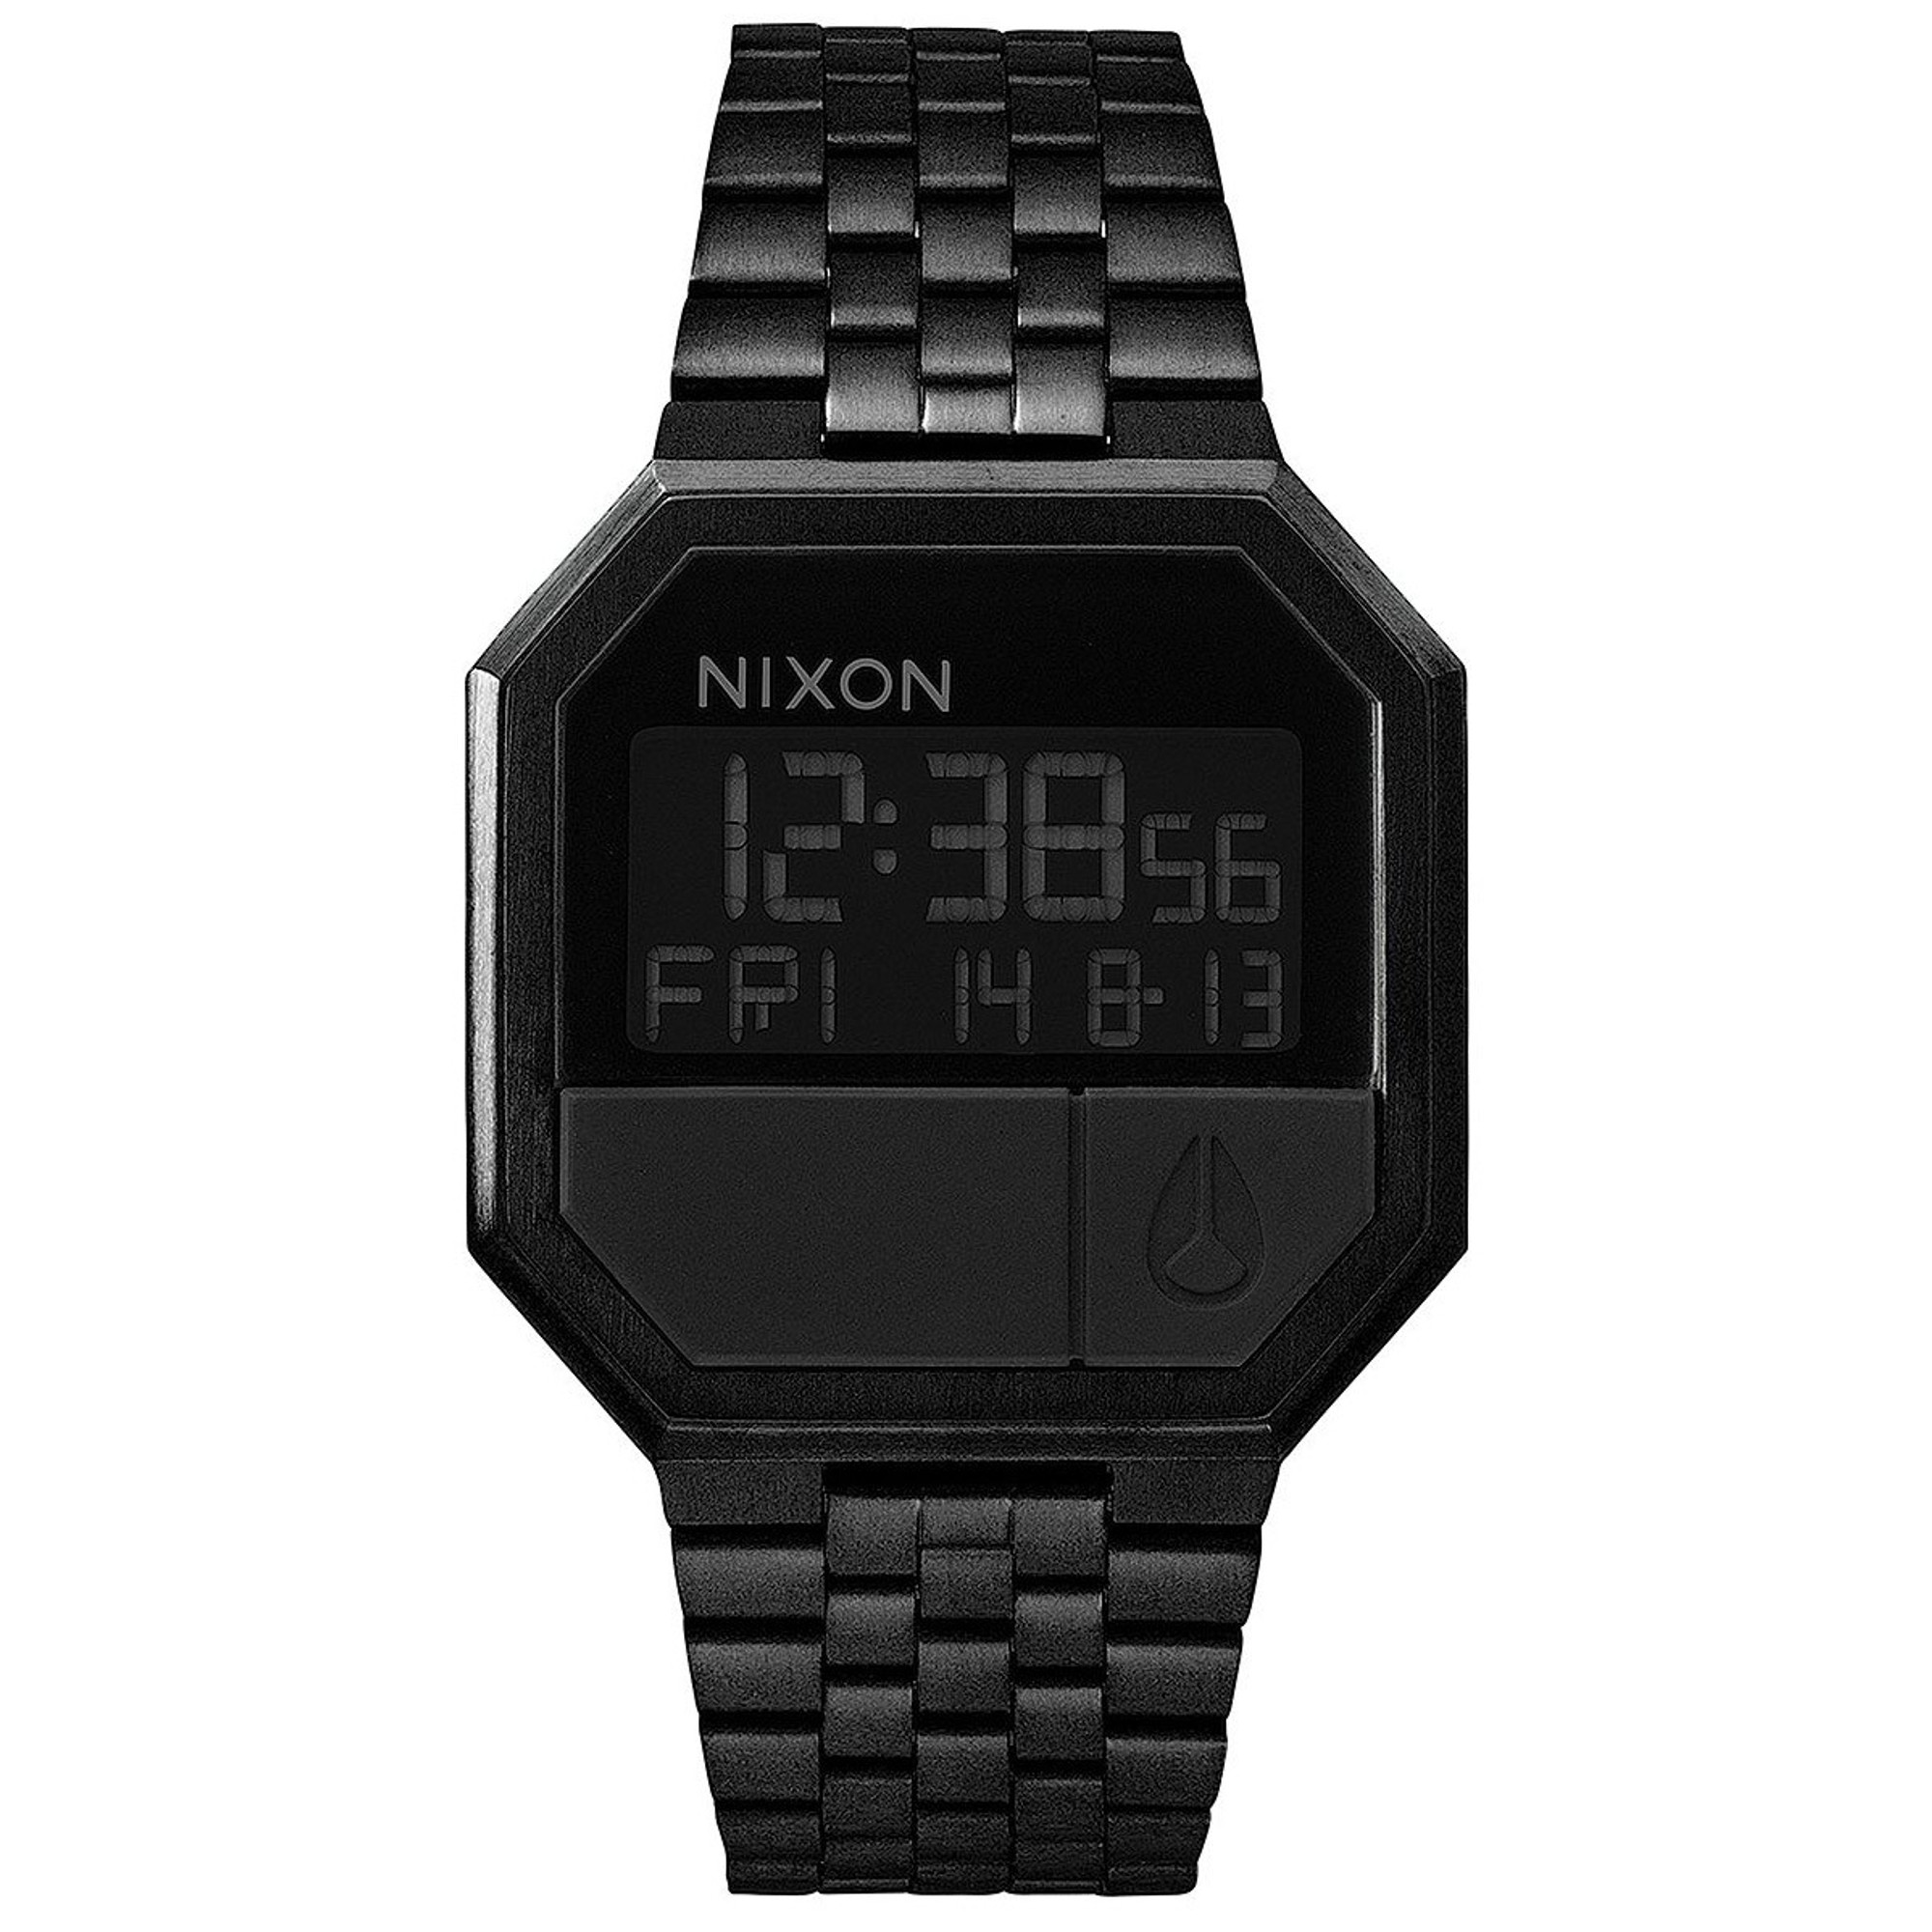 NIXON RE-RUN Quarz Digitaluhr A158-001-00